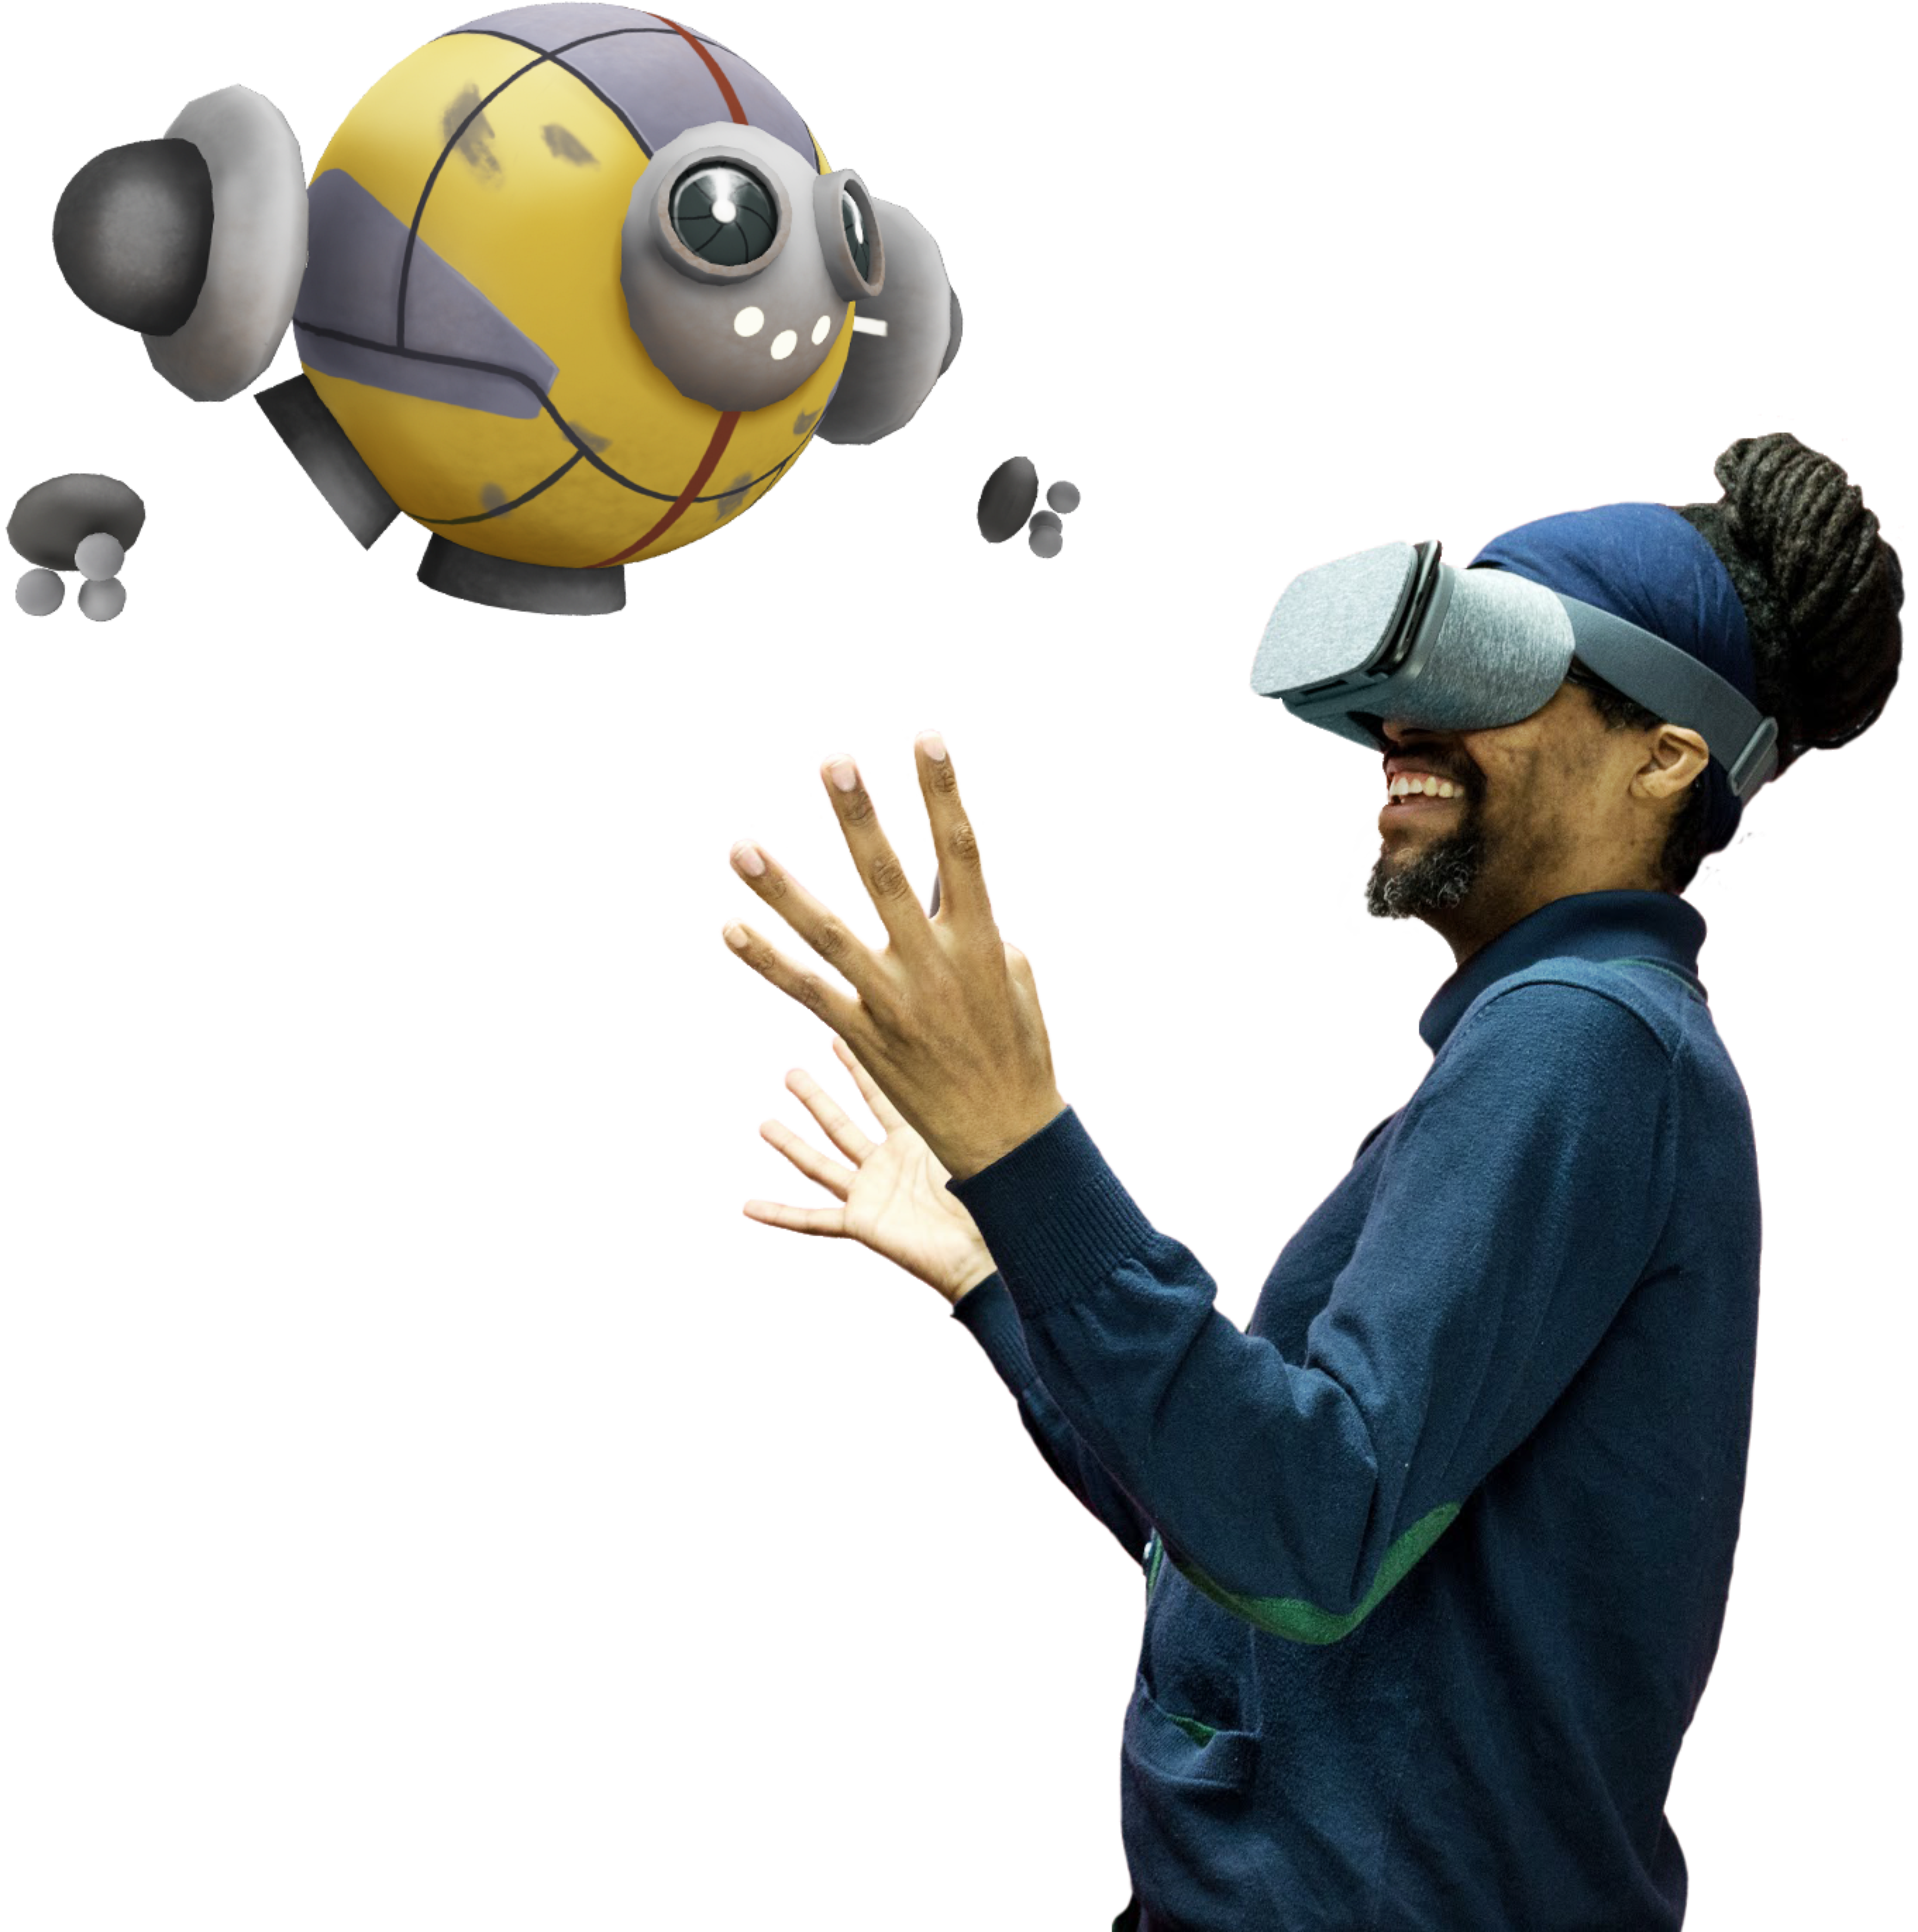 Altspacevr Available On Most Vr Platforms More Cartoon Style